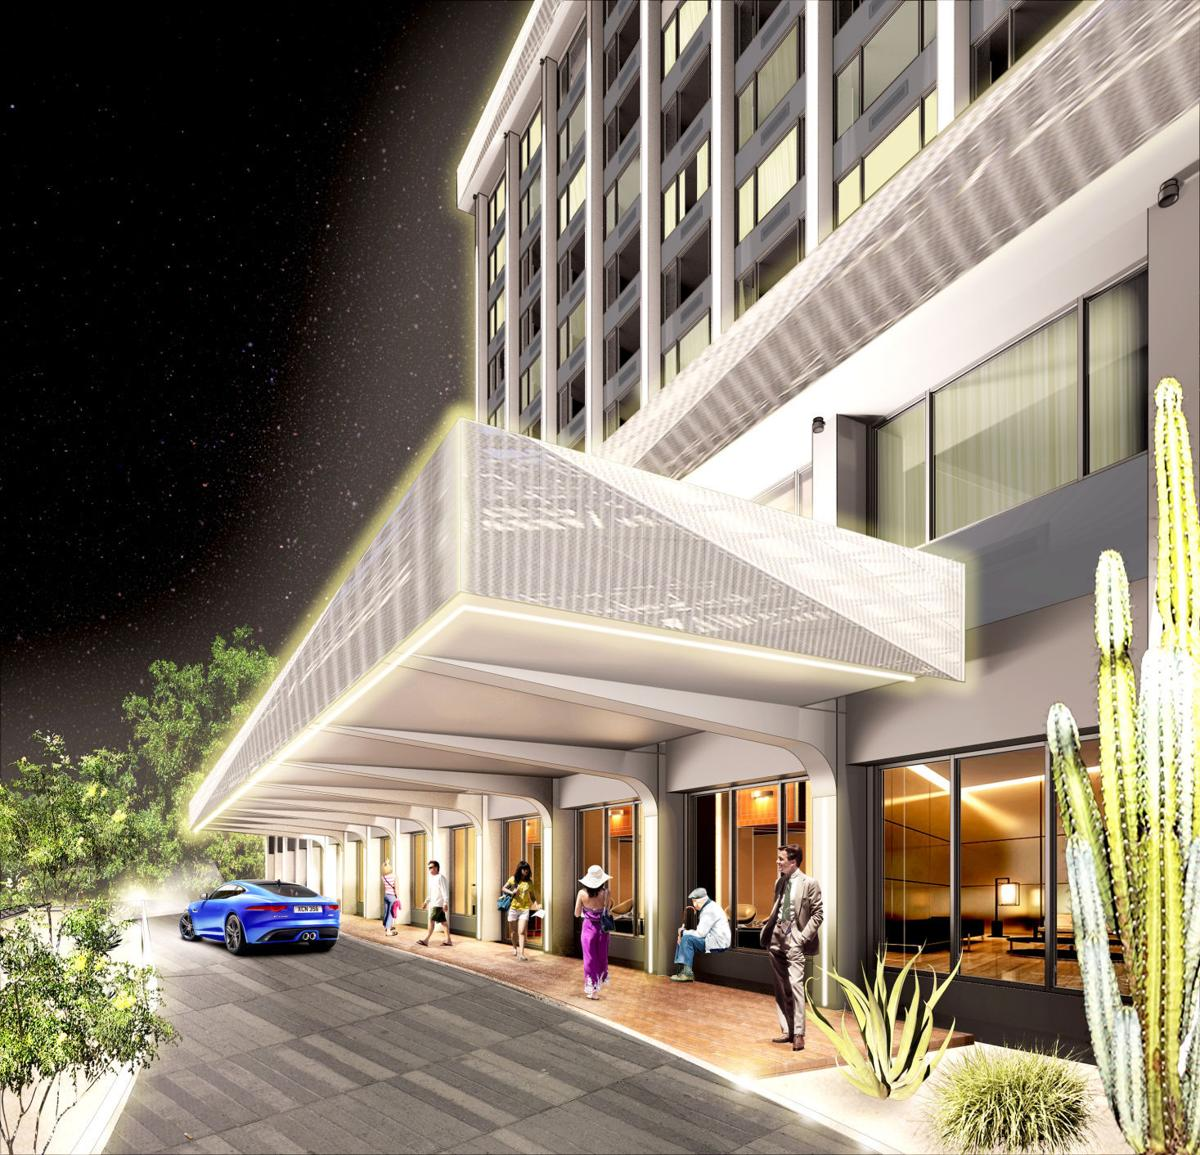 Downtown Tucson's former Hotel Arizona could reopen by 2019